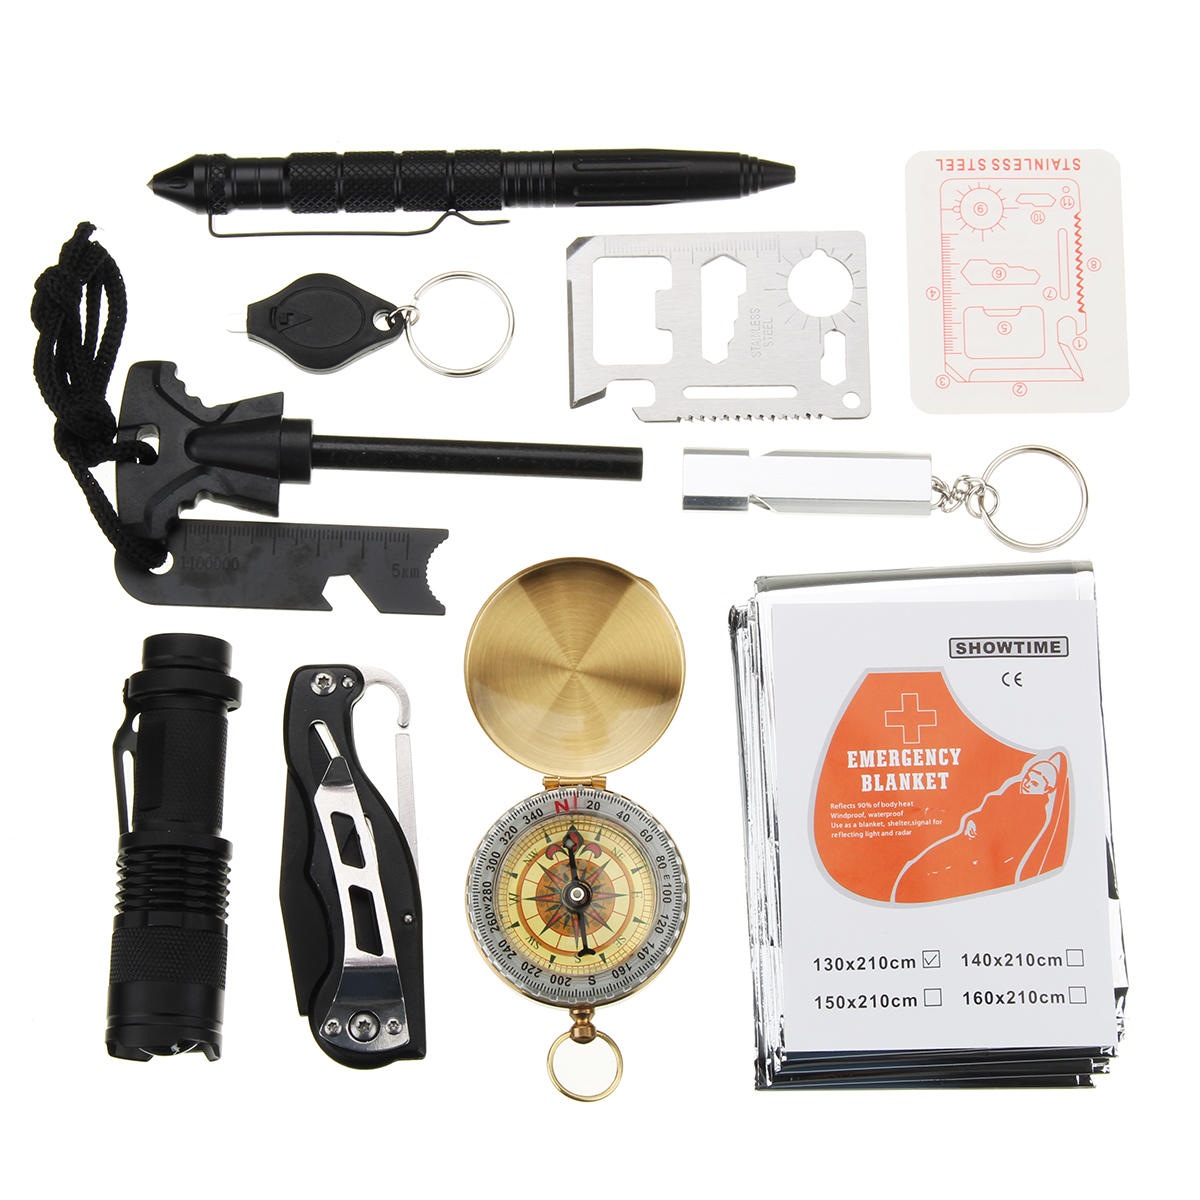 10 In 1 SOS Emergency Survival Equipment Kit Gear Tools Outdoor Tactical Hiking Camping